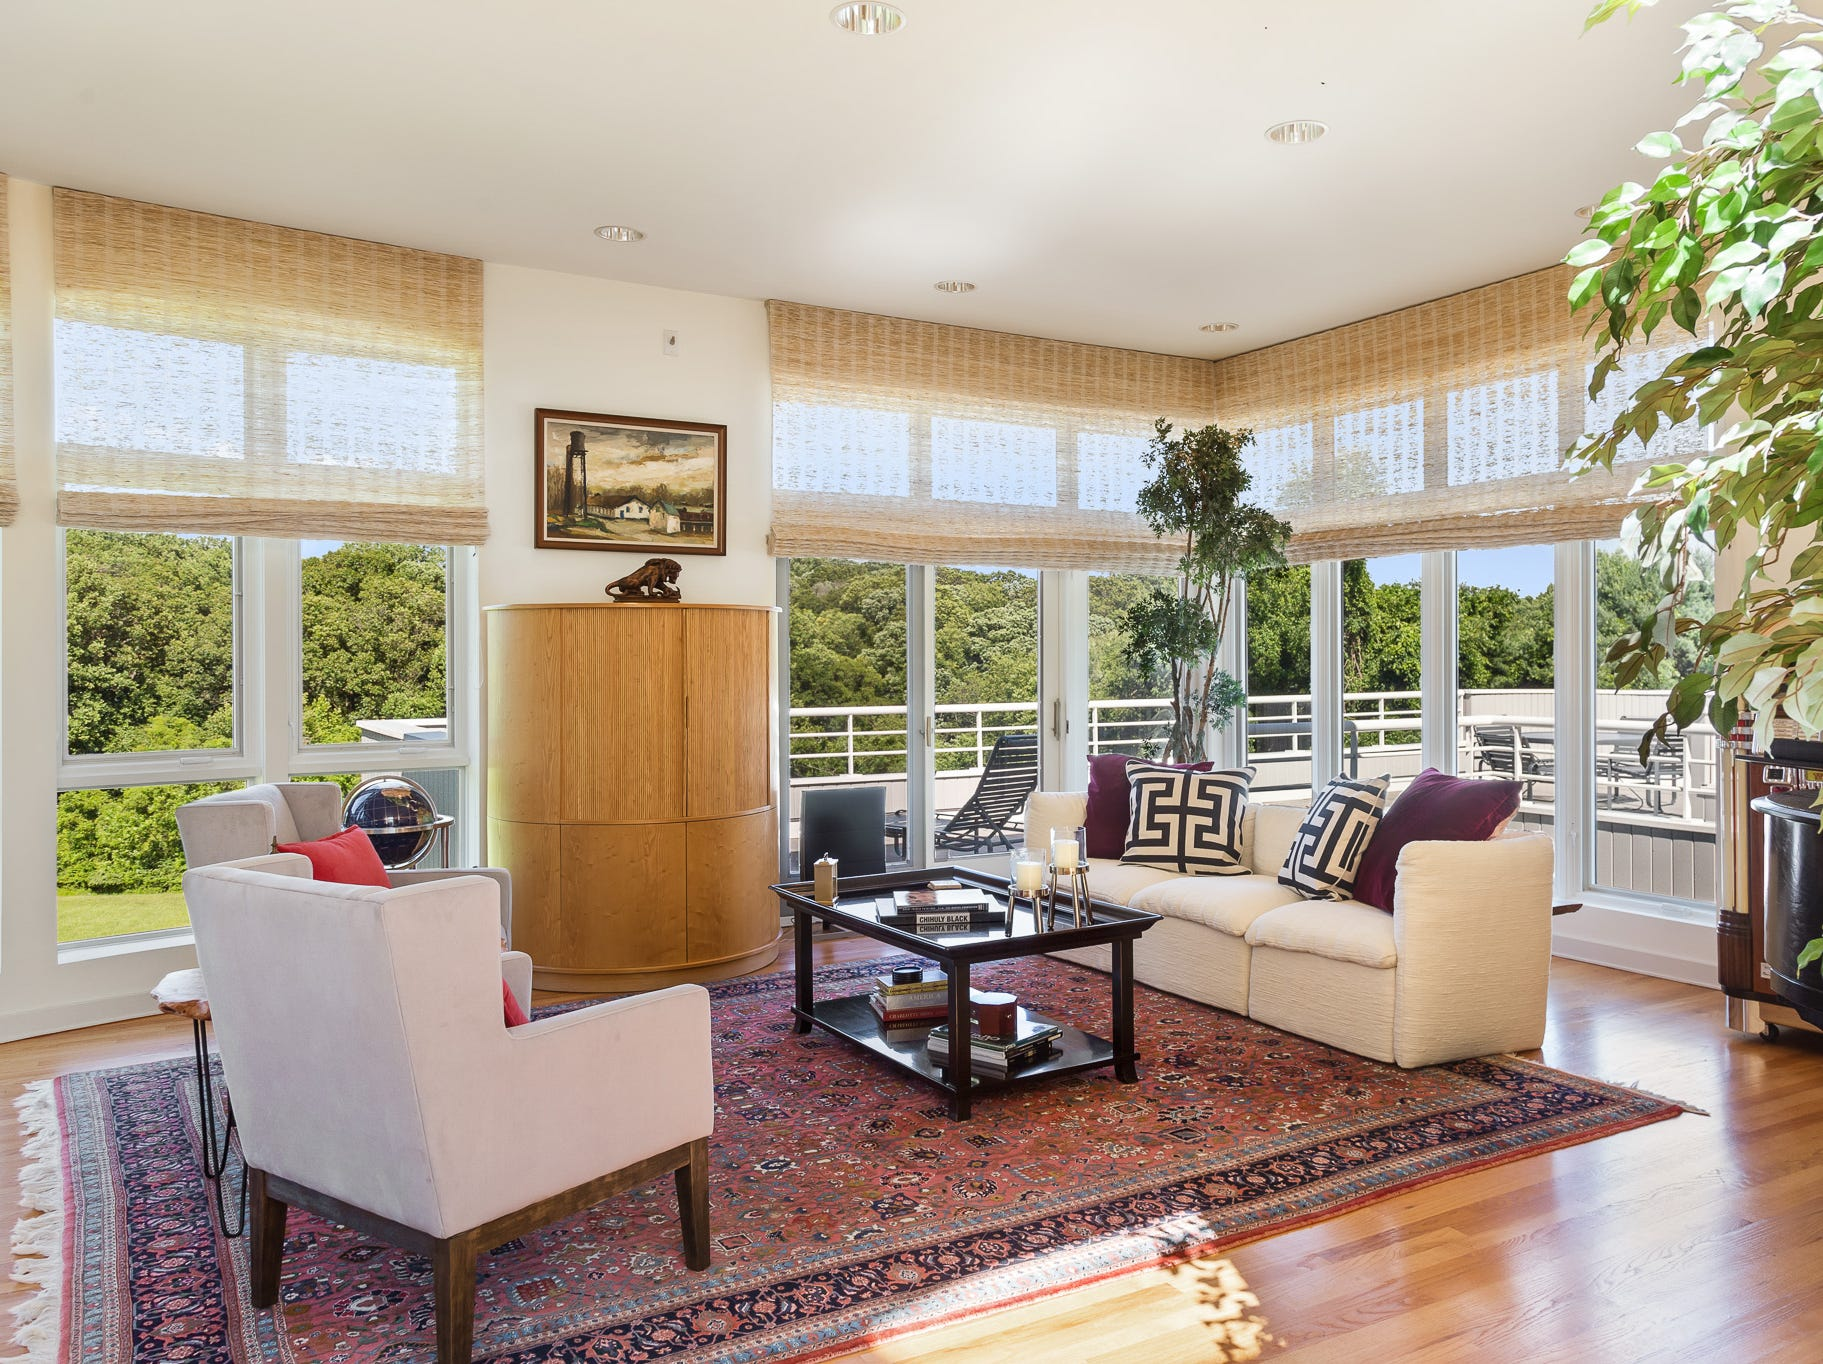 There are expansive views from the living room and almost every room in the house at 3611 Centerville Road in Greenville.